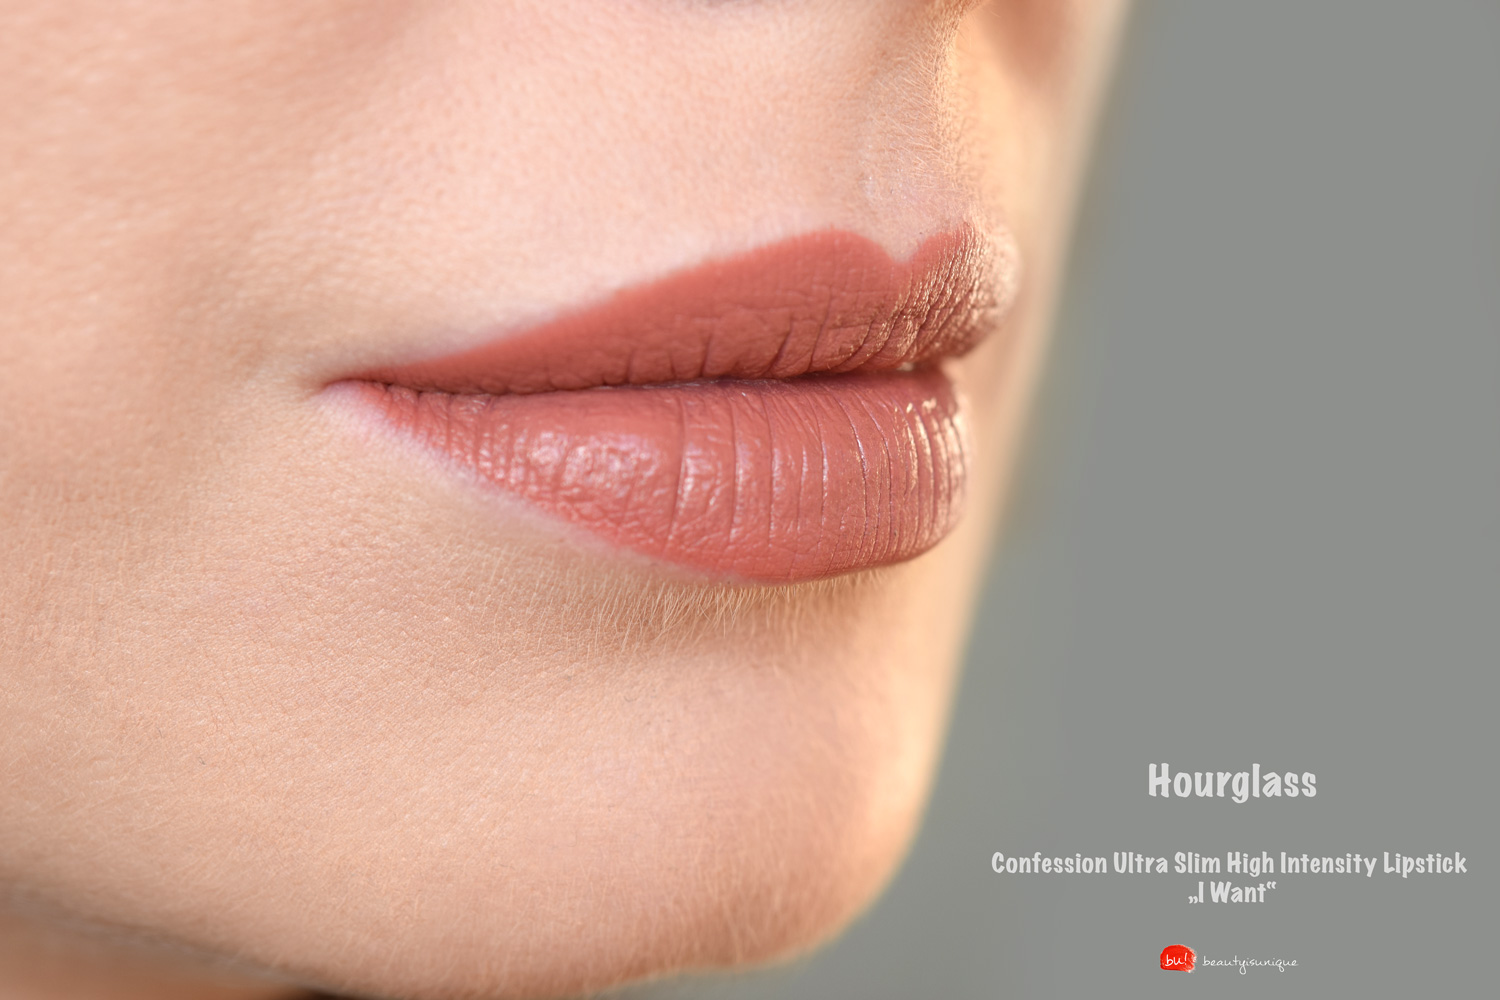 hourglass-confession-lipstick-I-want-swatches